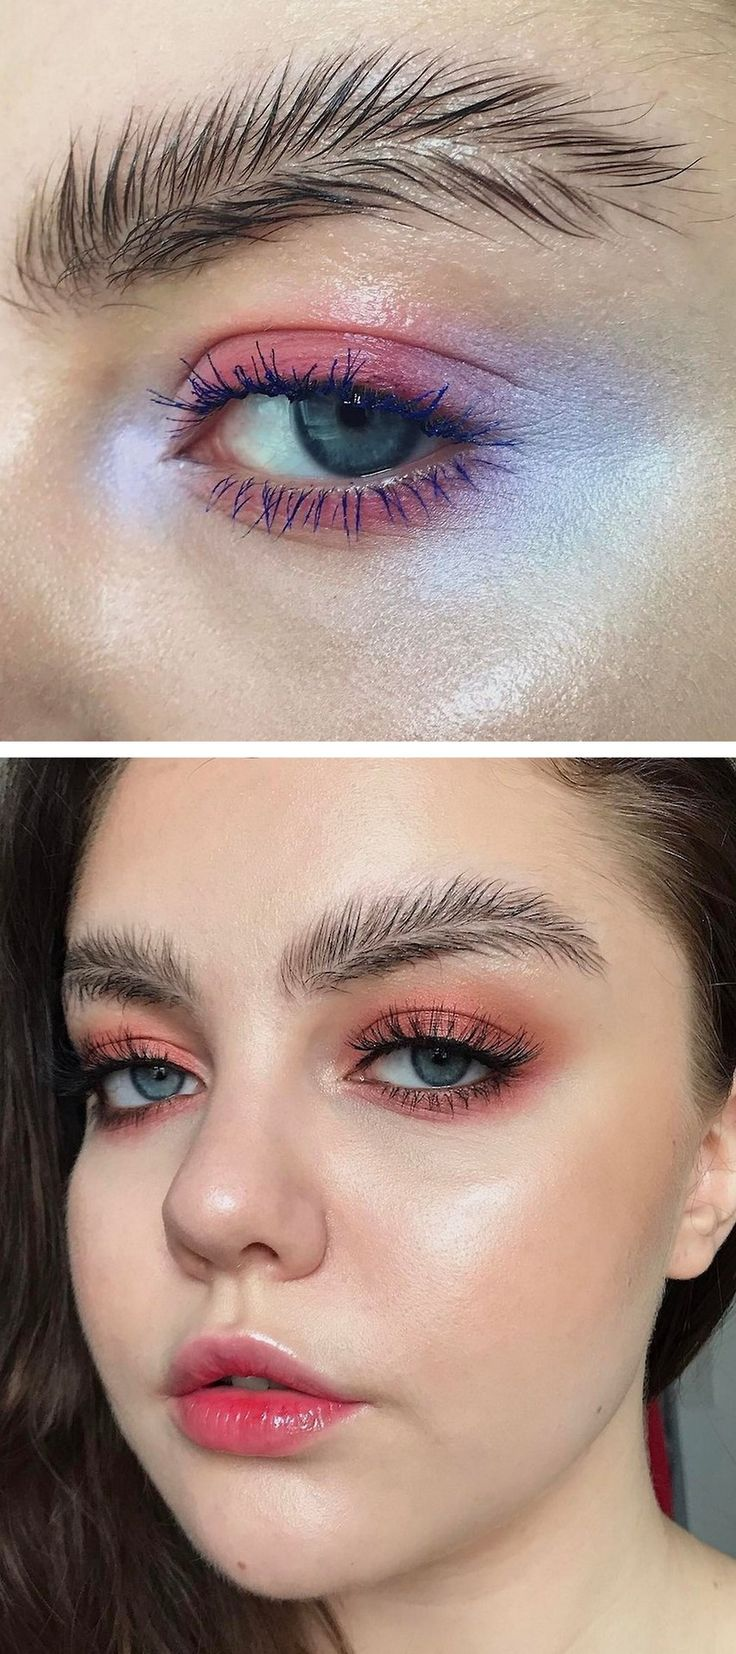 Sparkle shine glitter hair and makeup feathers shimmer - Halloweencrafts Diy Feather Brows For Cosplay Featherbrows What Started Out As A Joke By Finnish Makeup Artist Stella Sironen Has Now Become A Trend On